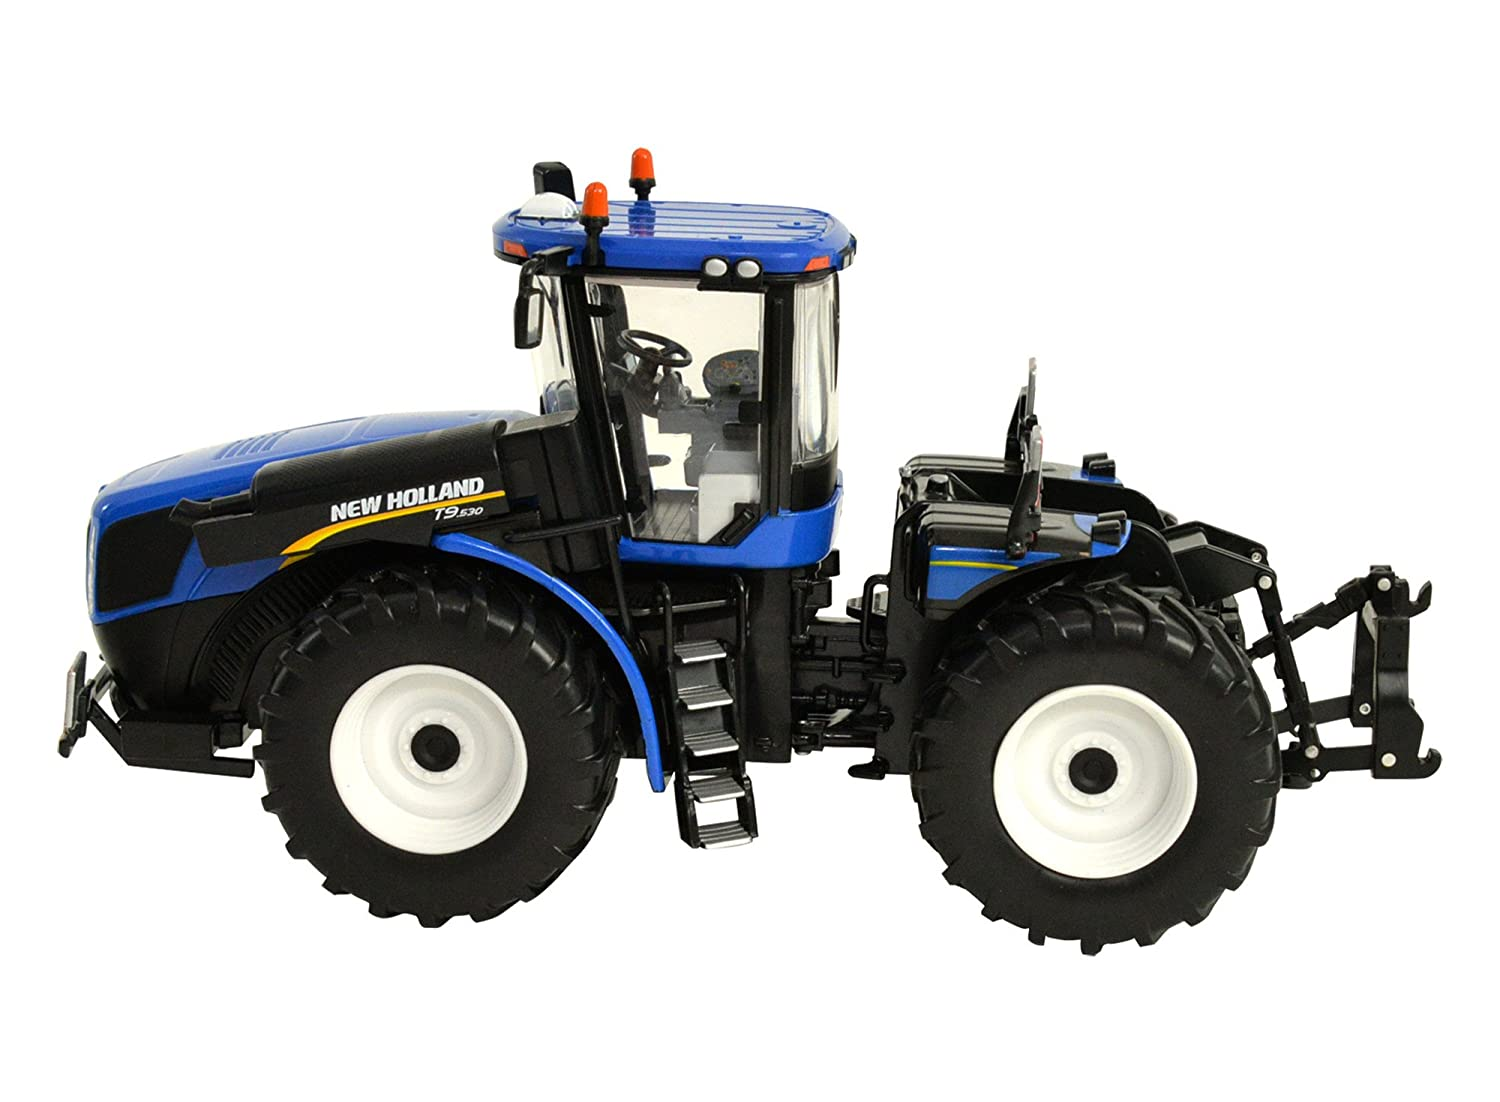 TOMY - 43193 - 1/32 Tracteur New Holland T9.565 Articulé TOMY - 43193 - 1/32 Tracteur New Holland T9.565 Articulé